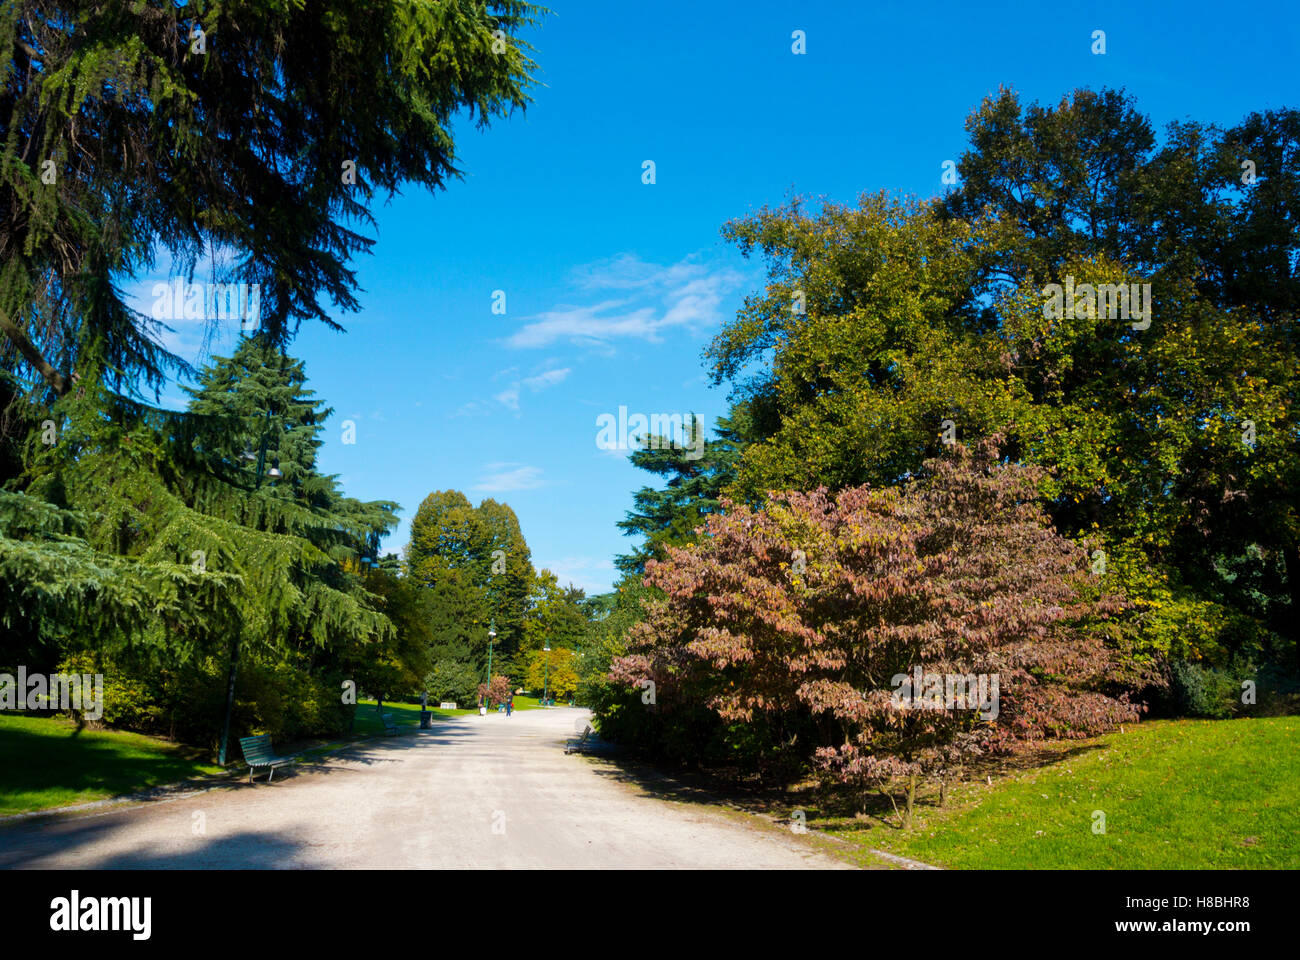 Parco Sempione, Milan, Lombardy, Italy - Stock Image